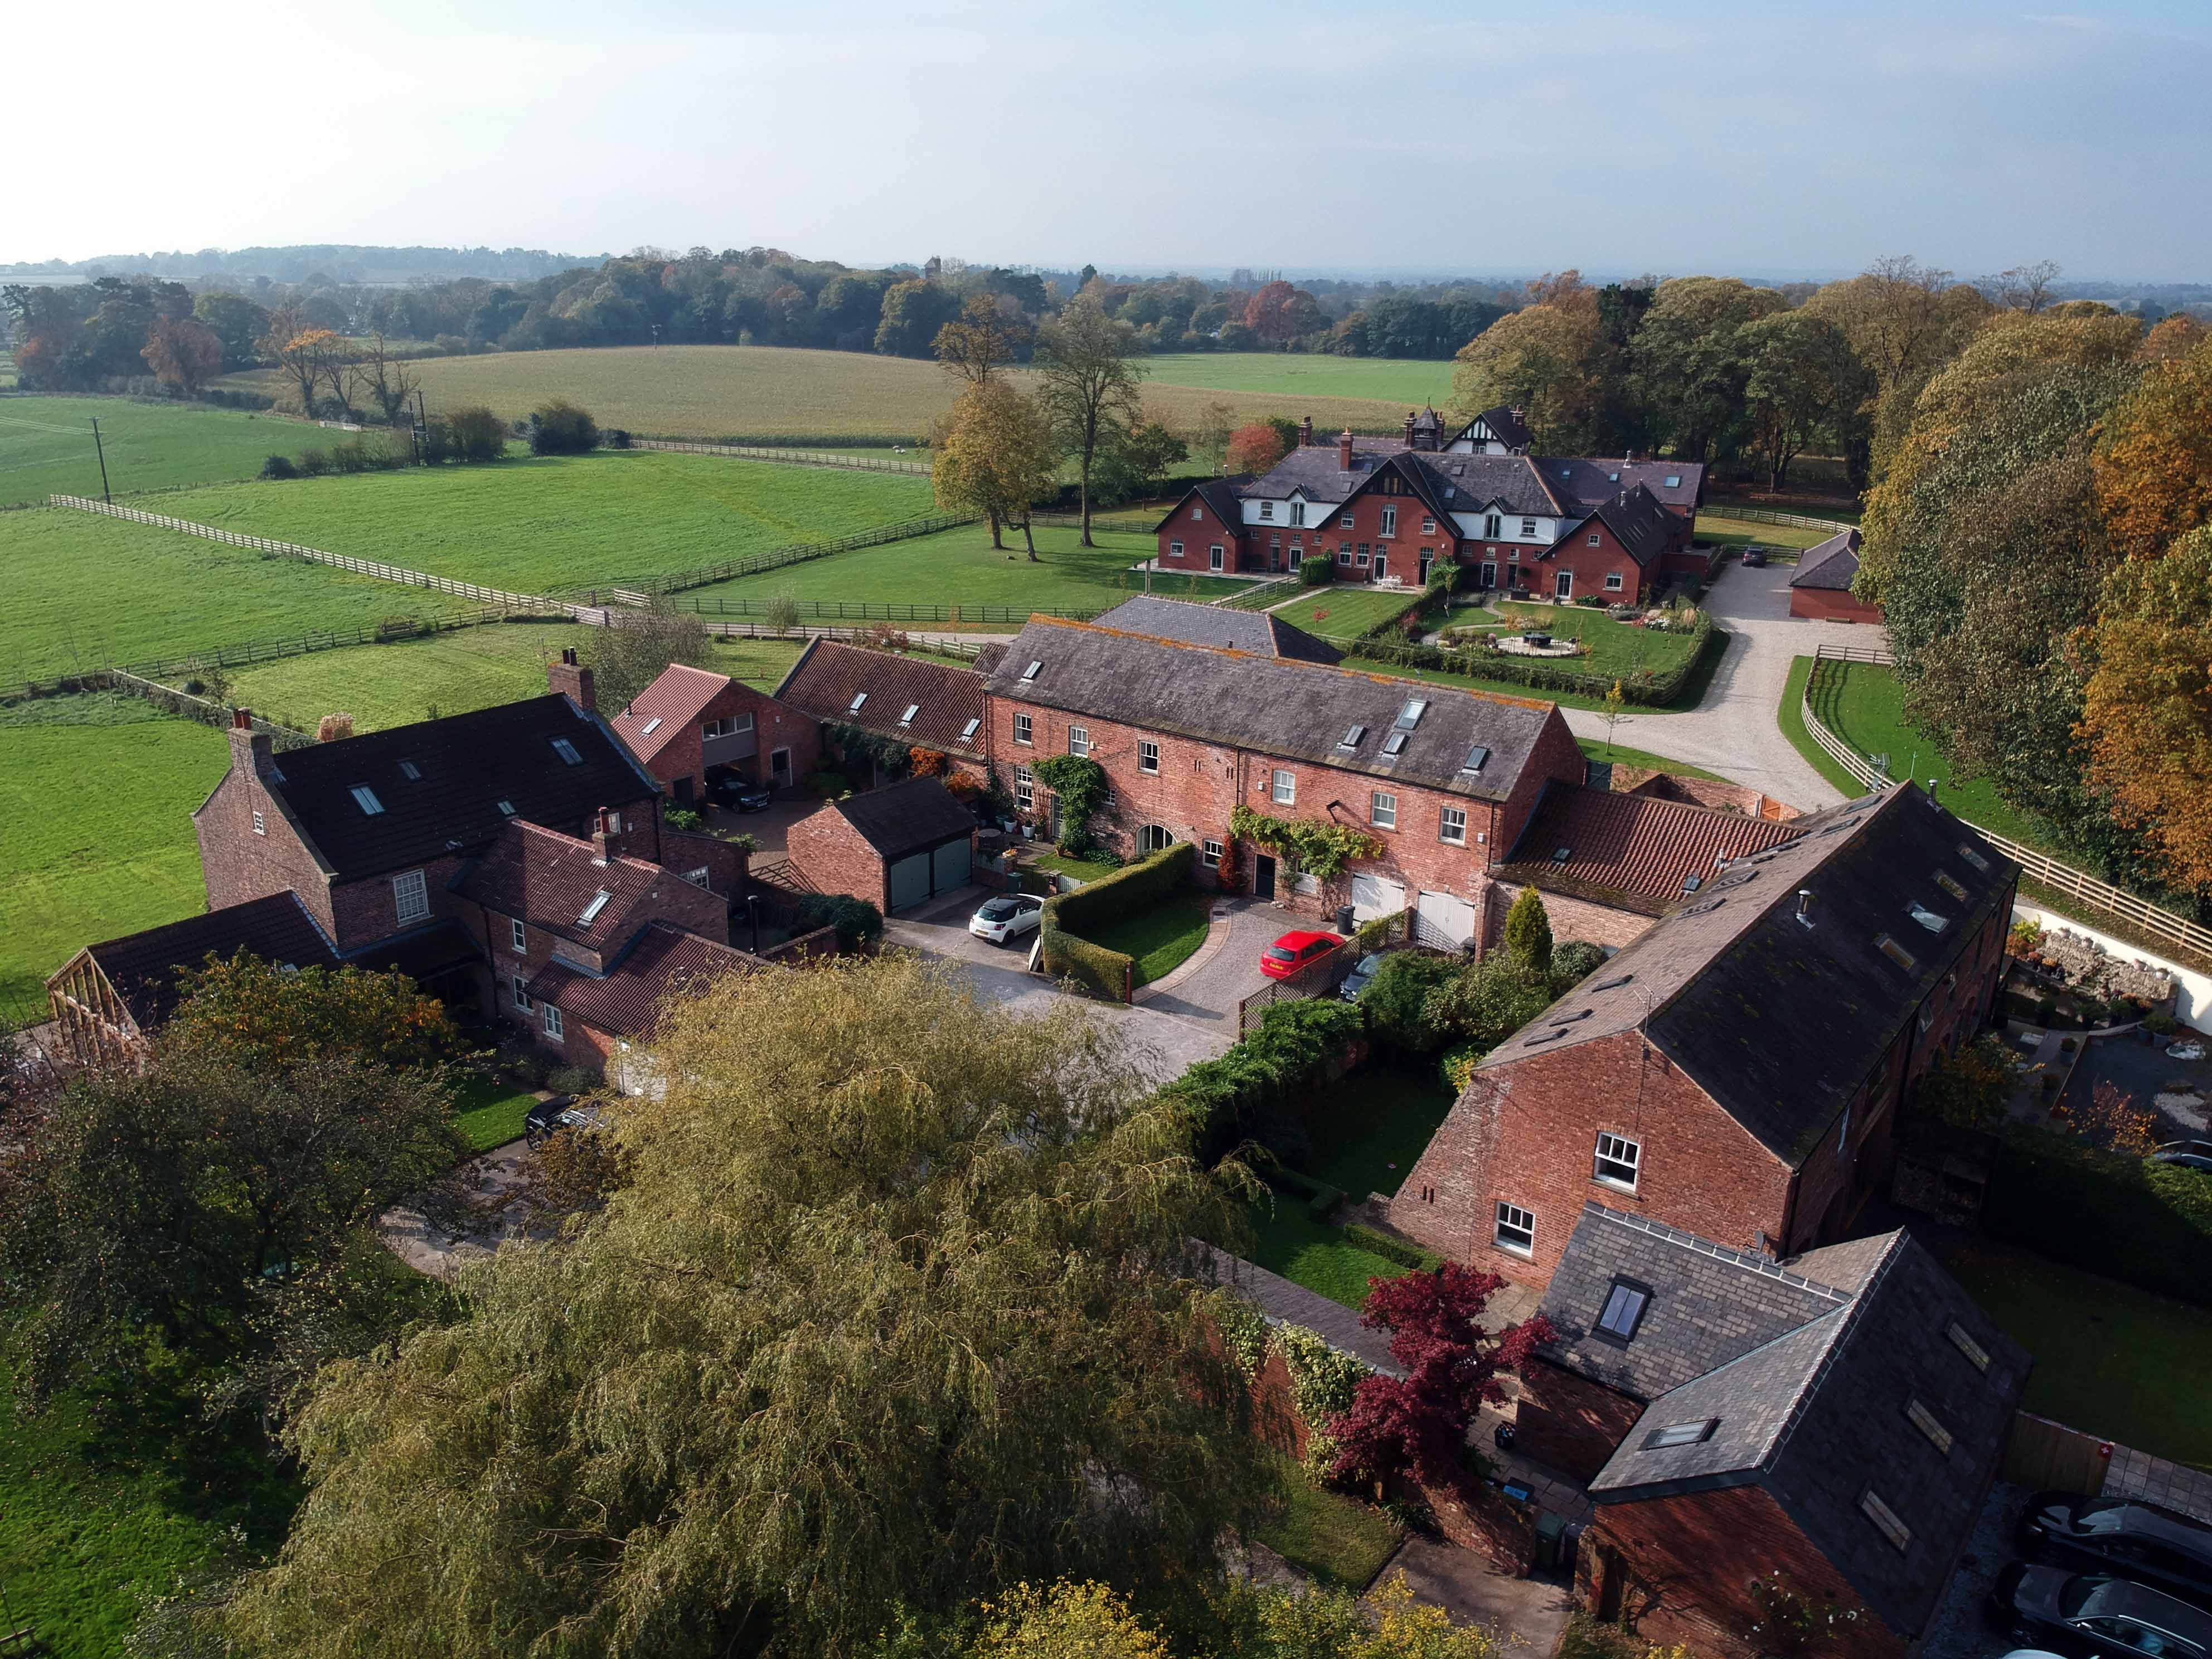 Erkulis Barn Conversion Home Farm Askham Bryan